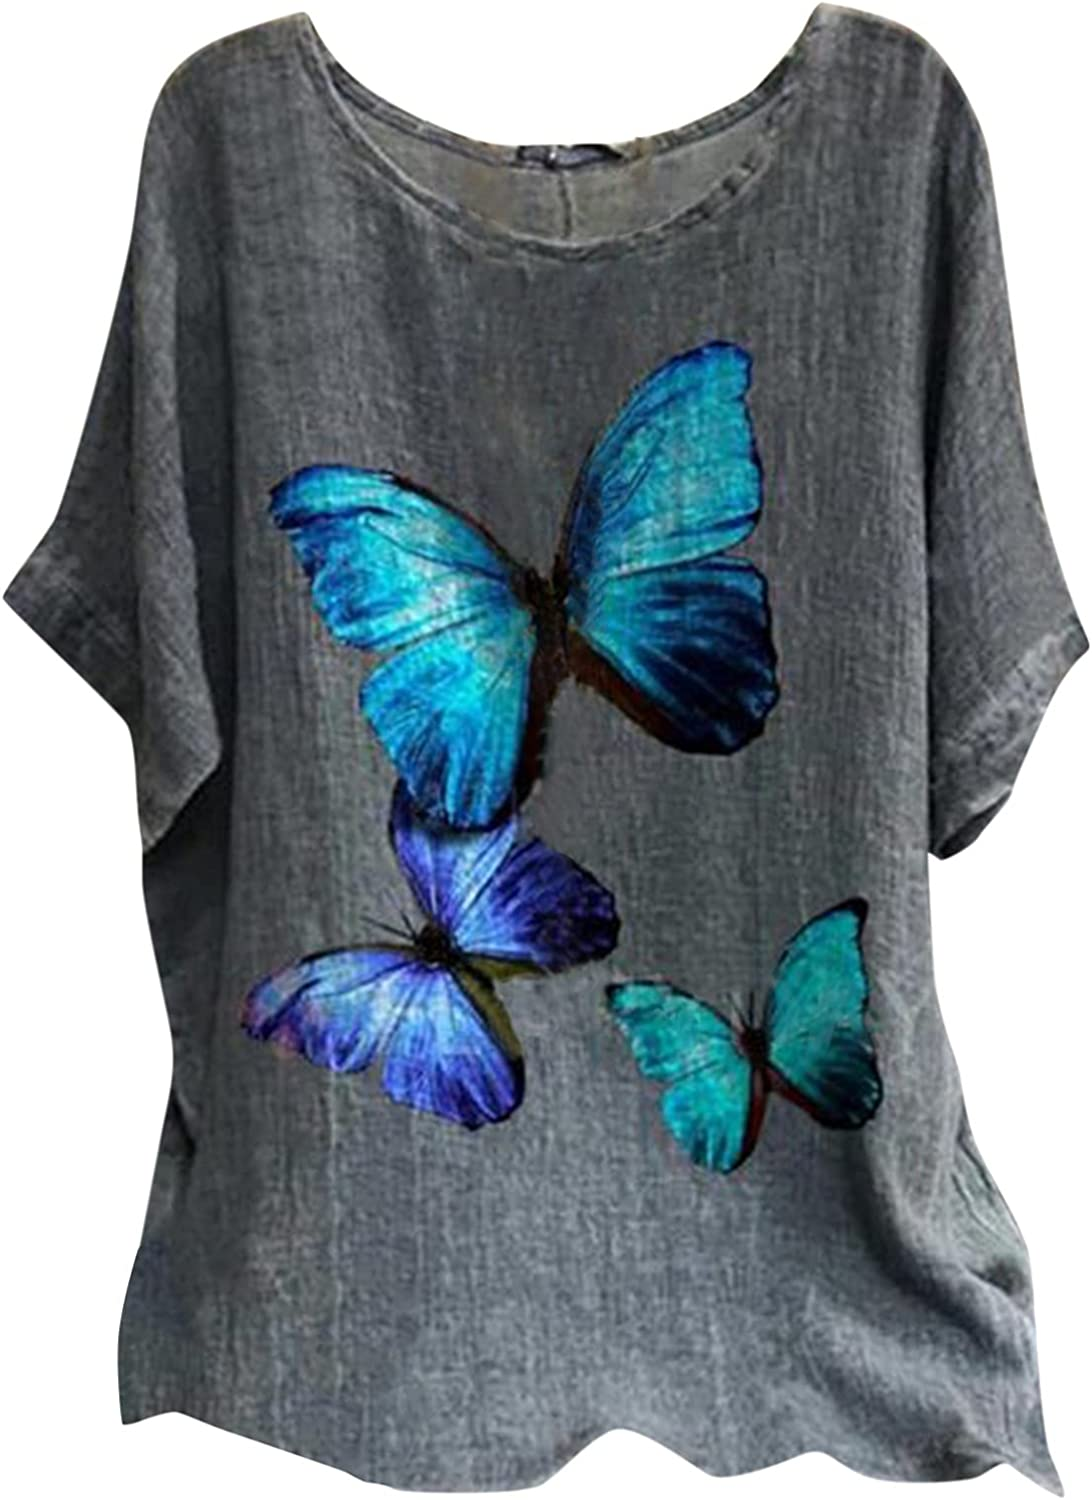 Womens Plus Size Summer Casual Tops, Short Sleeve Linen Shirts Floral Printed Loose Blouses Tunics T-Shirts